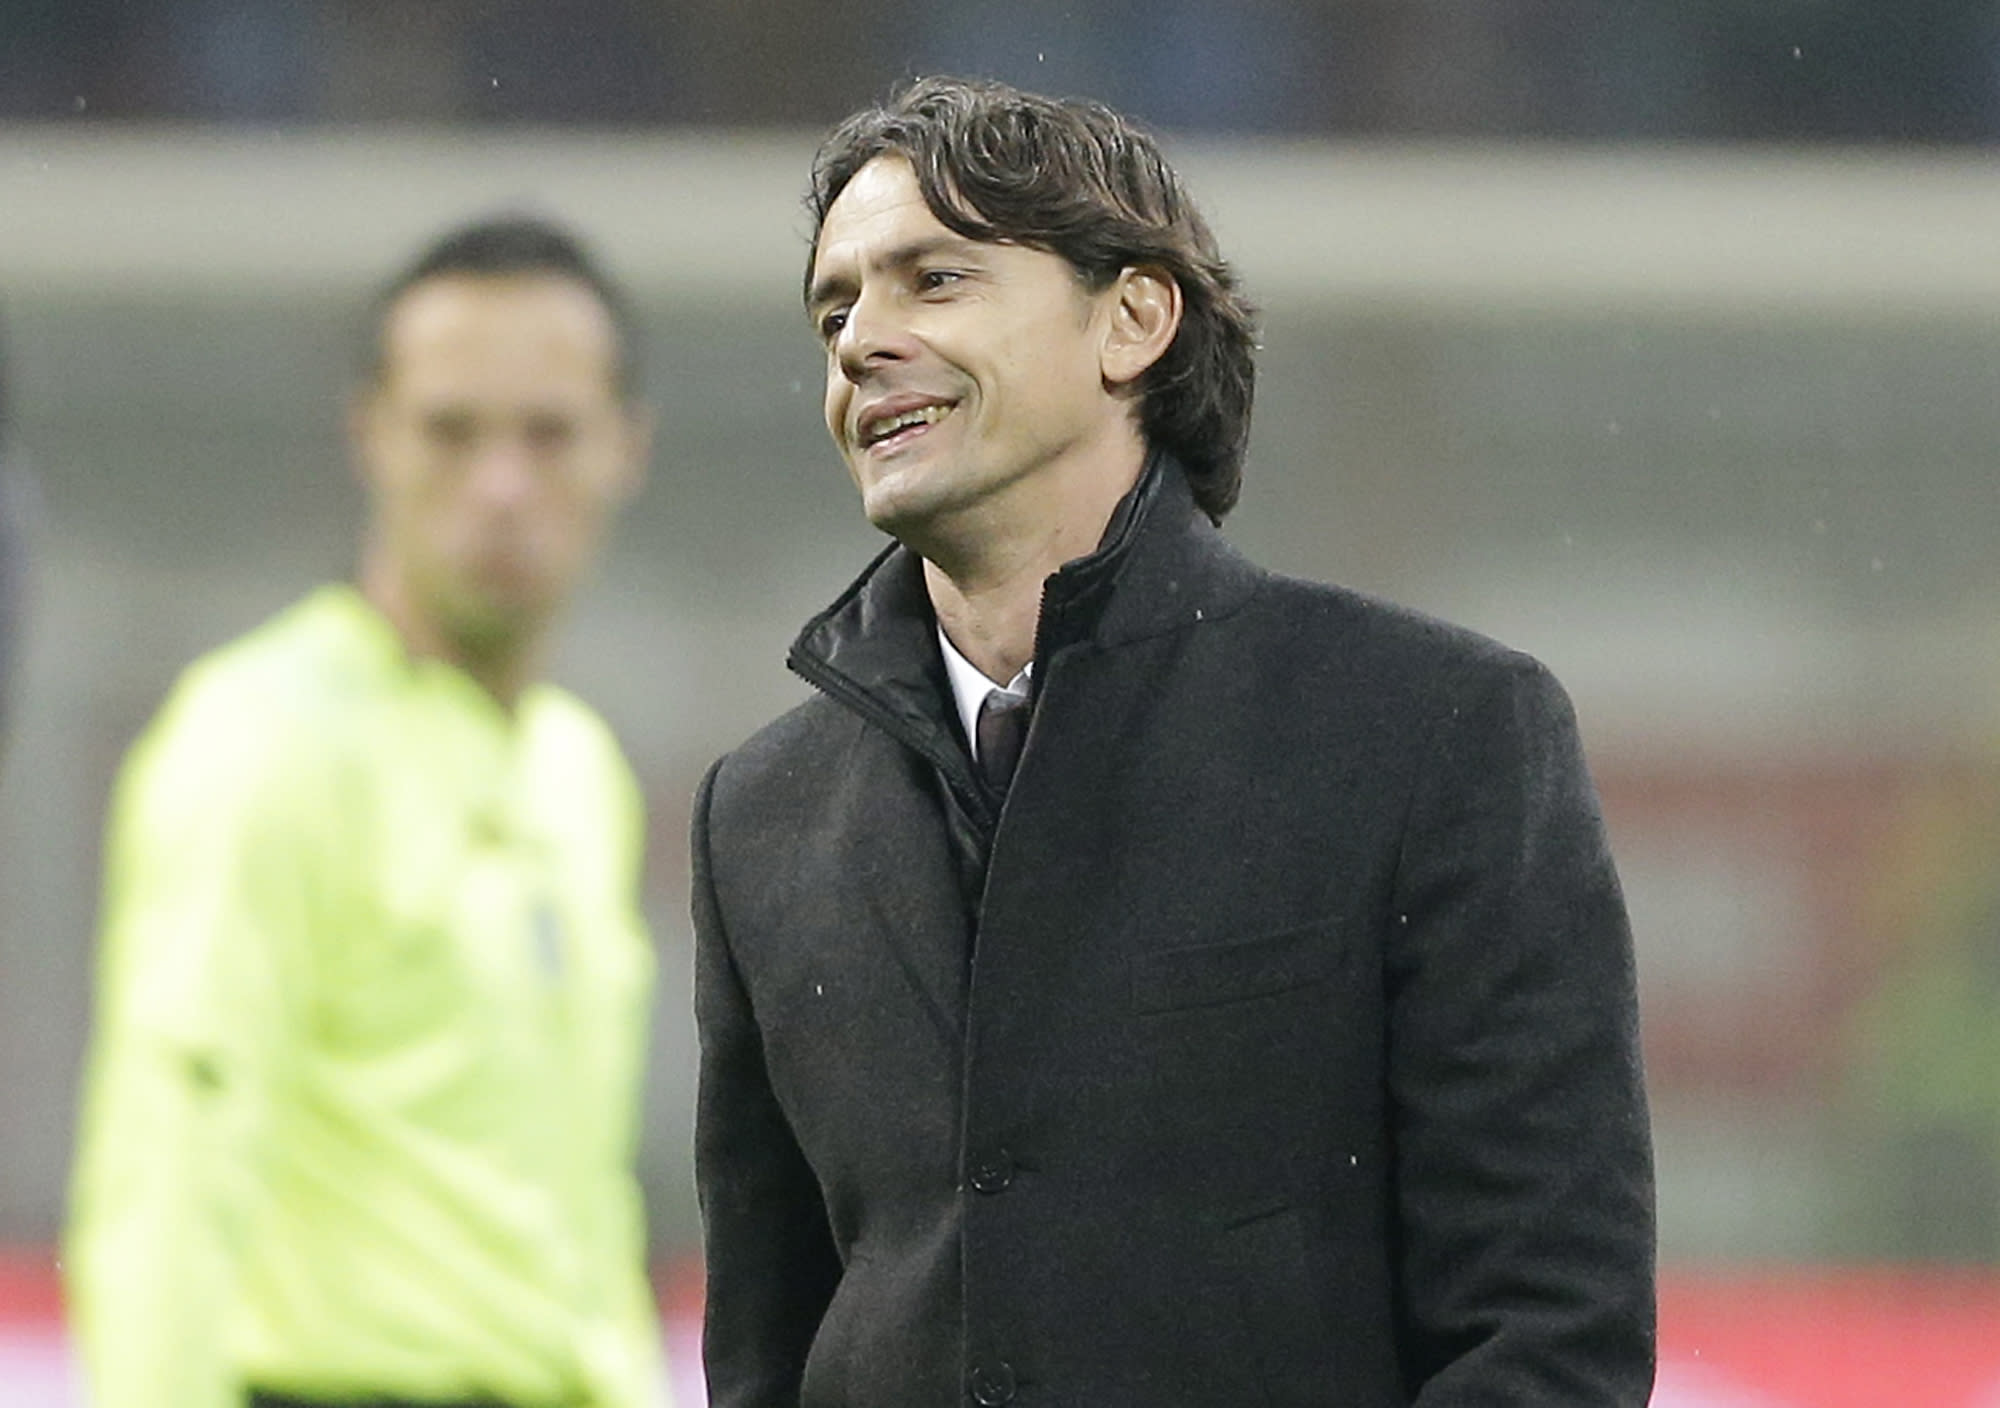 Roma looks to end on a high after mixed fortunes